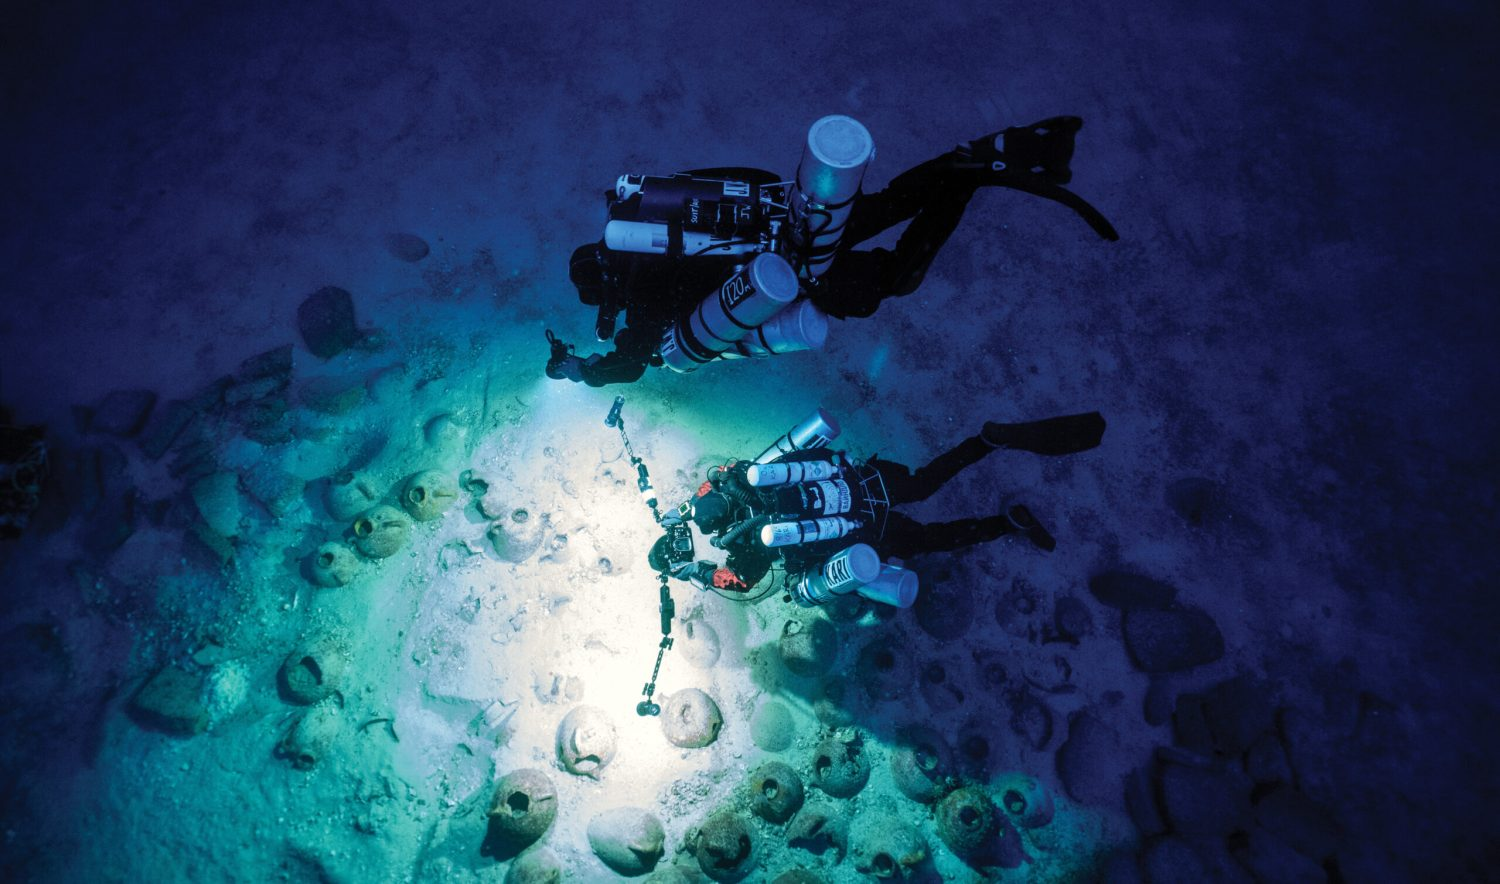 above The discovery of a shipwreck off the coast of Gozo in 2007 provided a rare opportunity to study a Phoenician vessel. Its depth means that divers can only operate safely for a few minutes; here team members are filming high-definition footage in order to create a 3D reconstruction of the wreck.